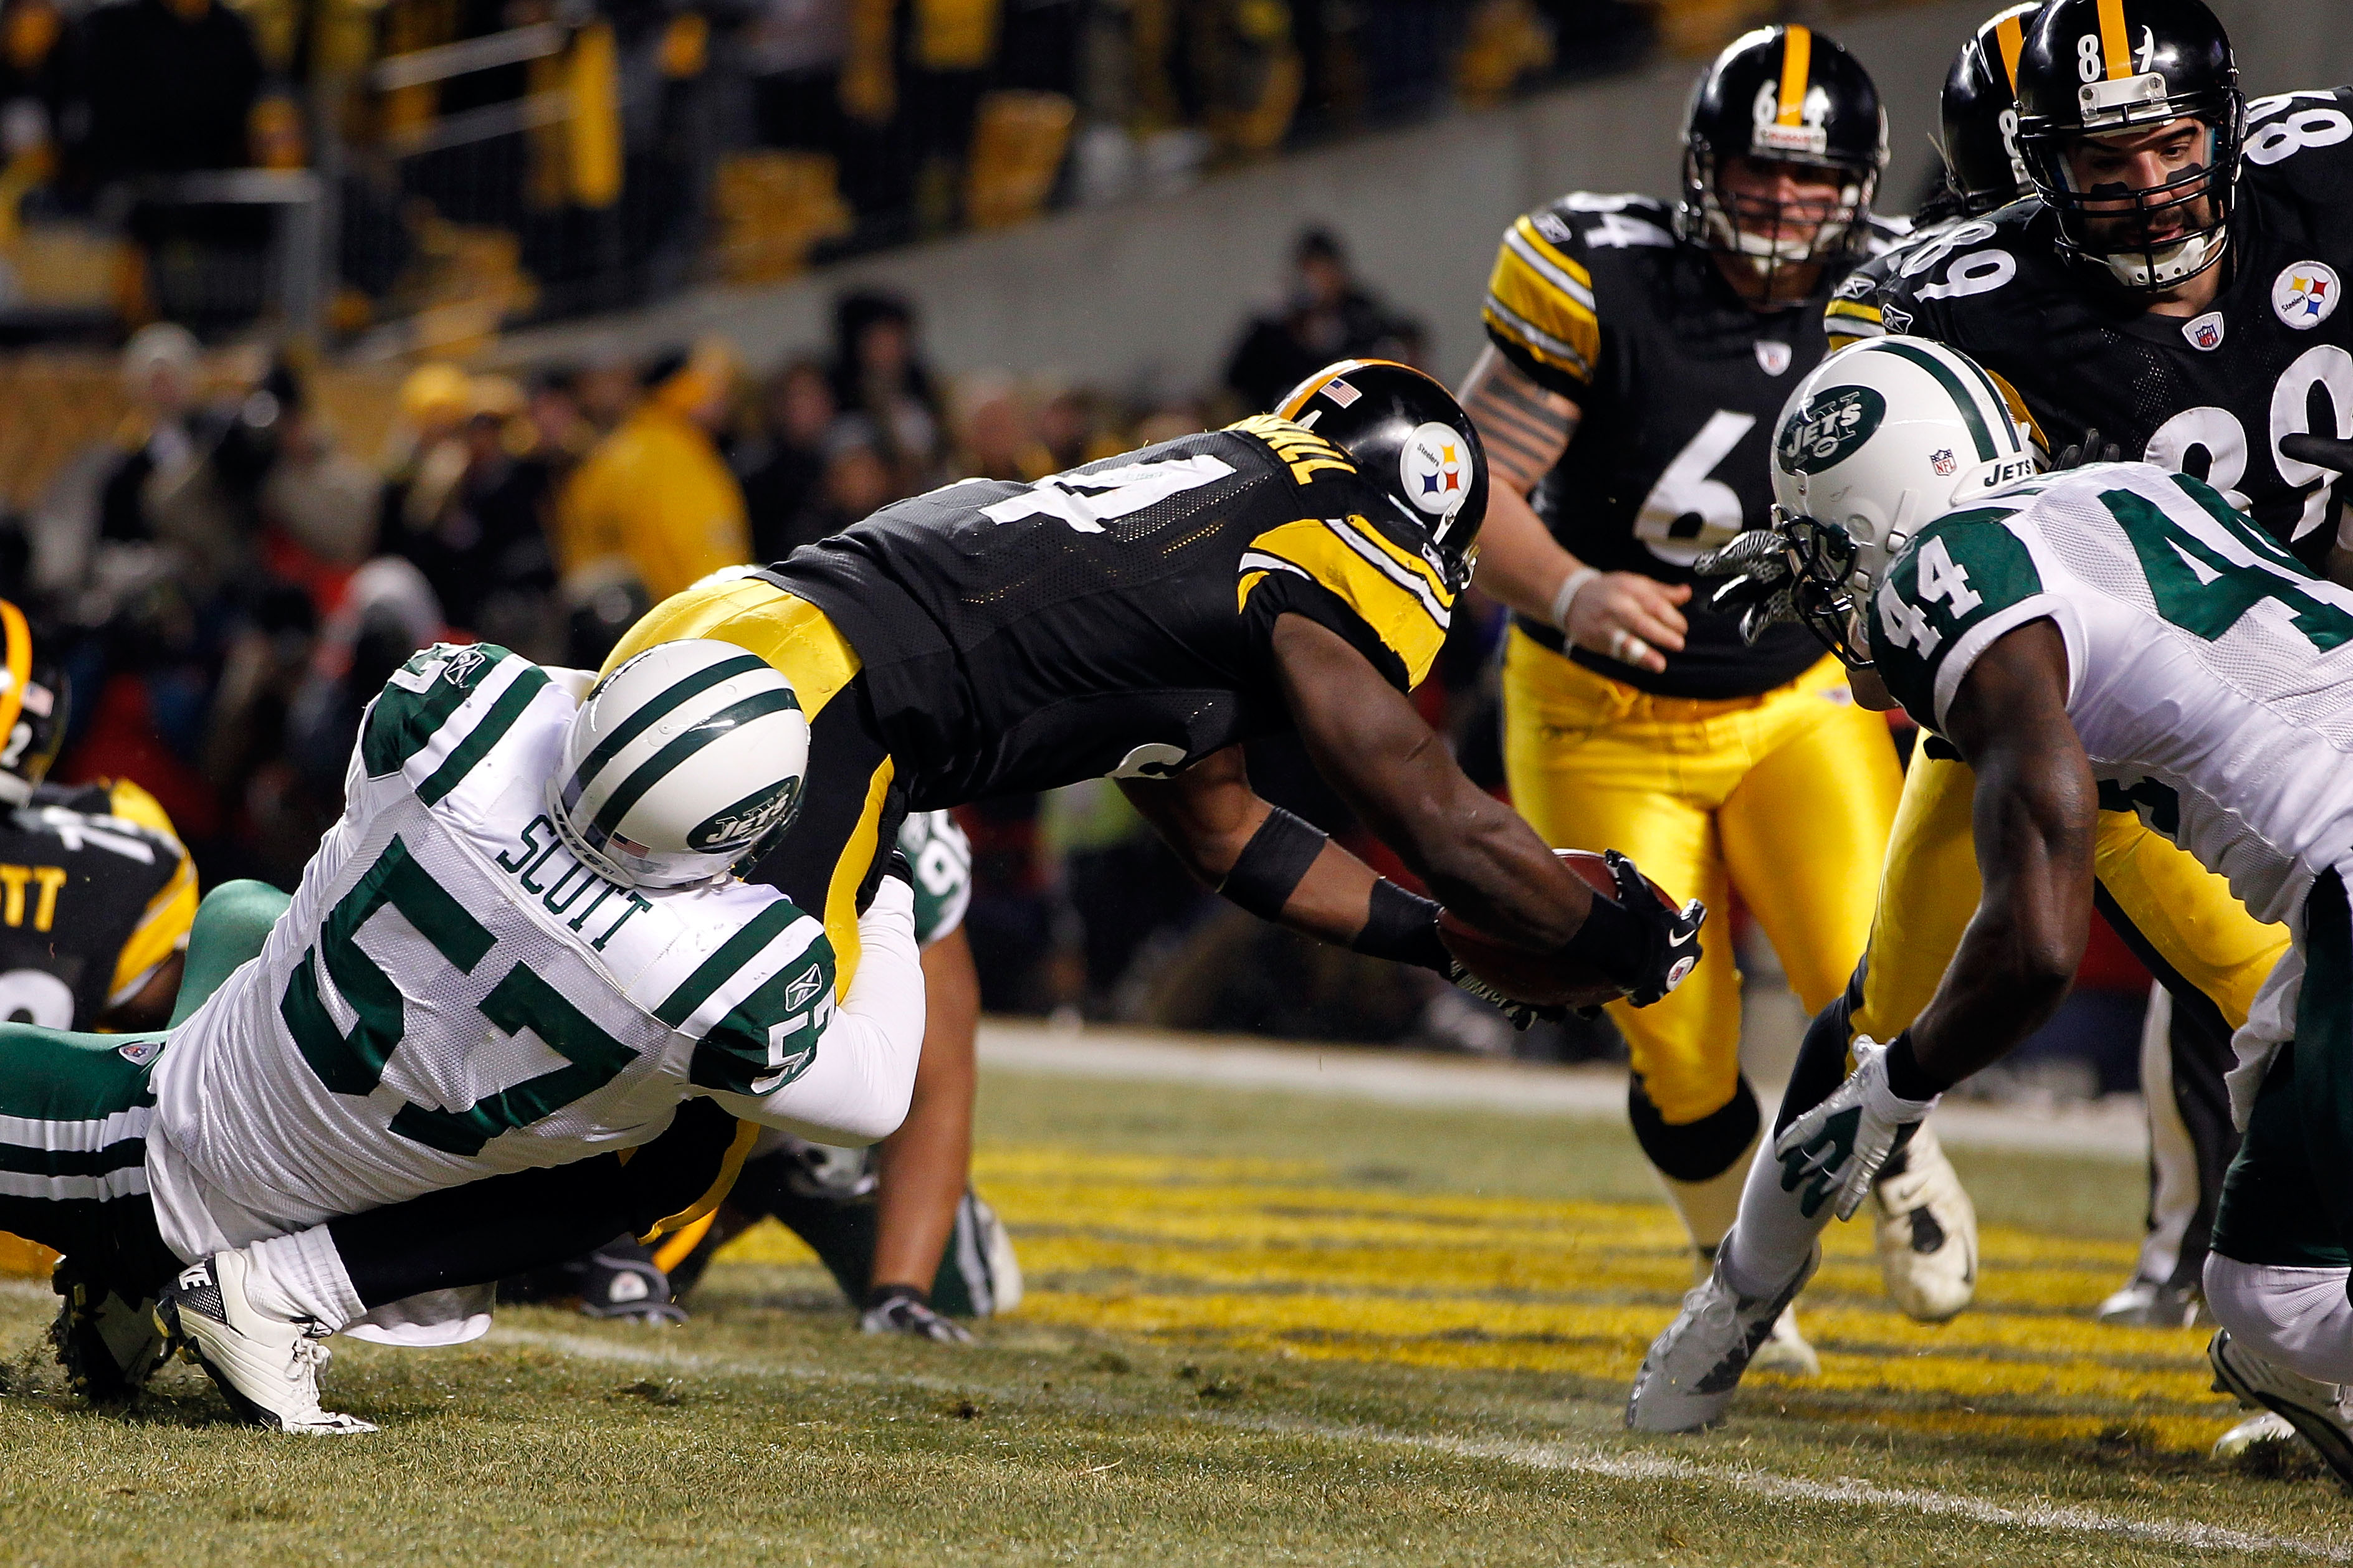 PITTSBURGH, PA - JANUARY 23:  Rashard Mendenhall #34 of the Pittsburgh Steelers scores a first quarter touchdown as Bart Scott #57 and James Ihedigbo #44 of the New York Jets attemps to tackle during the 2011 AFC Championship game at Heinz Field on Januar